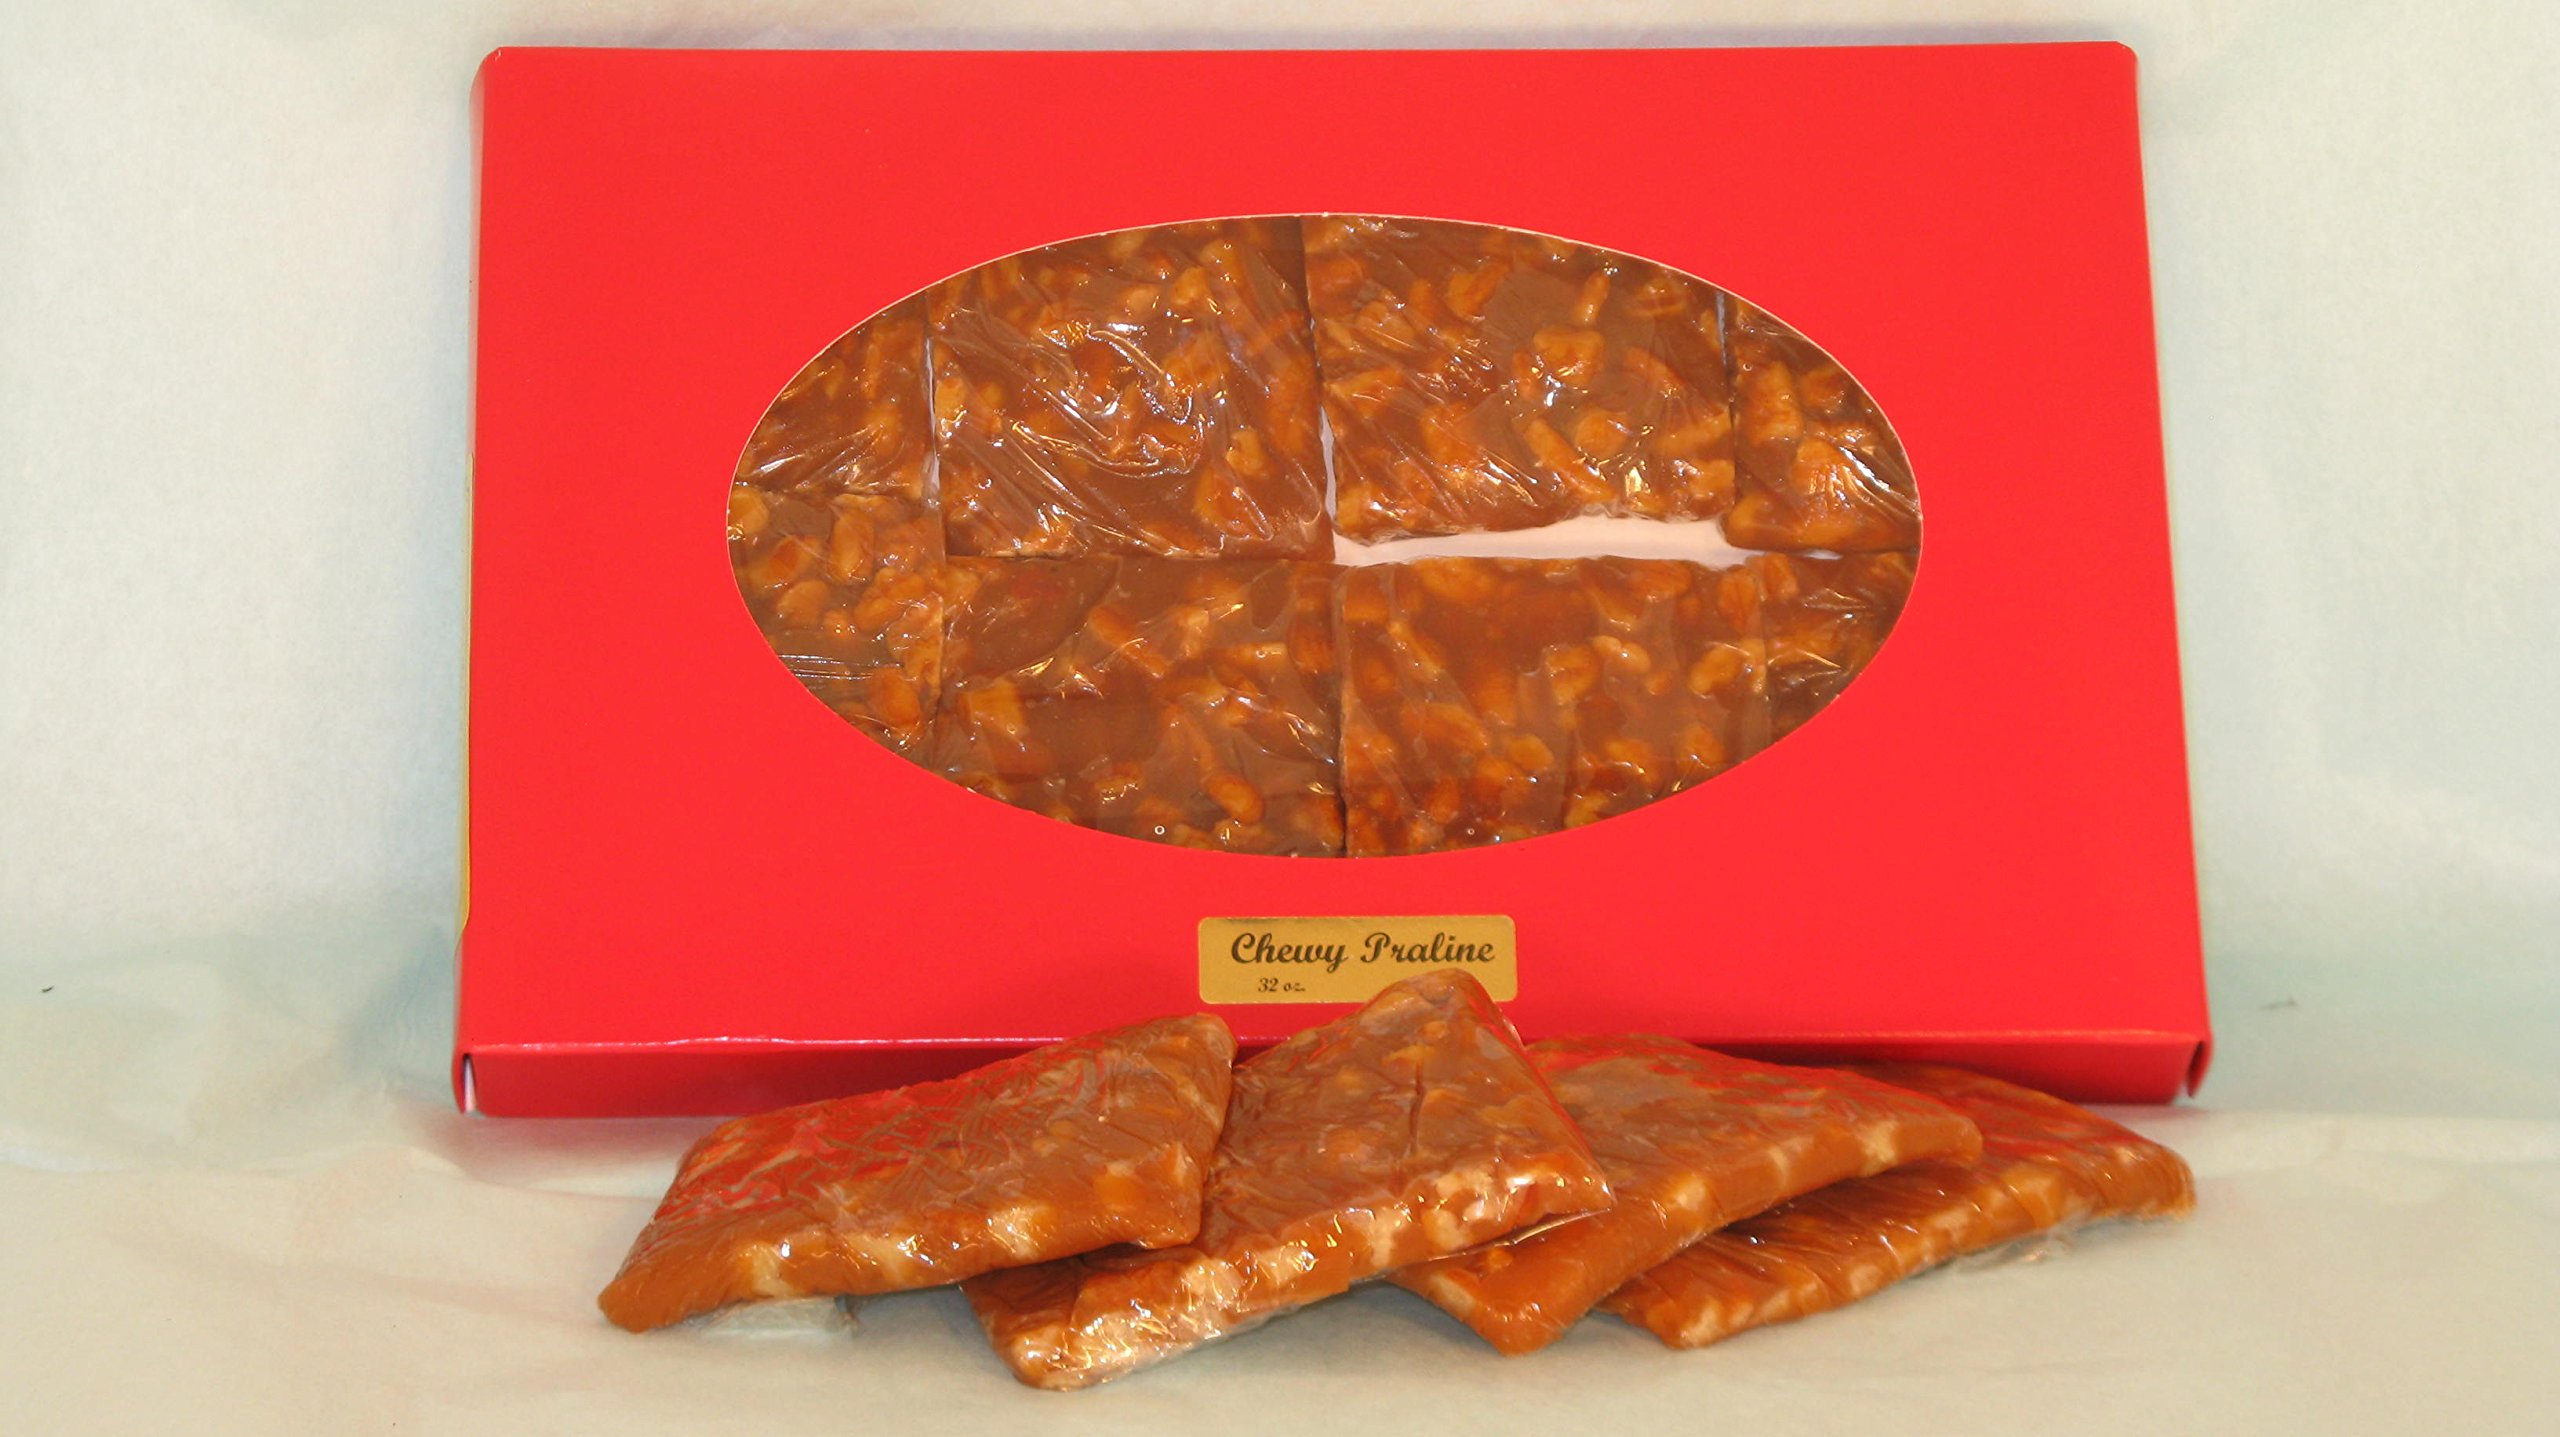 Chewy Pralines Gift Box (1 Pound) by Holiday Farms